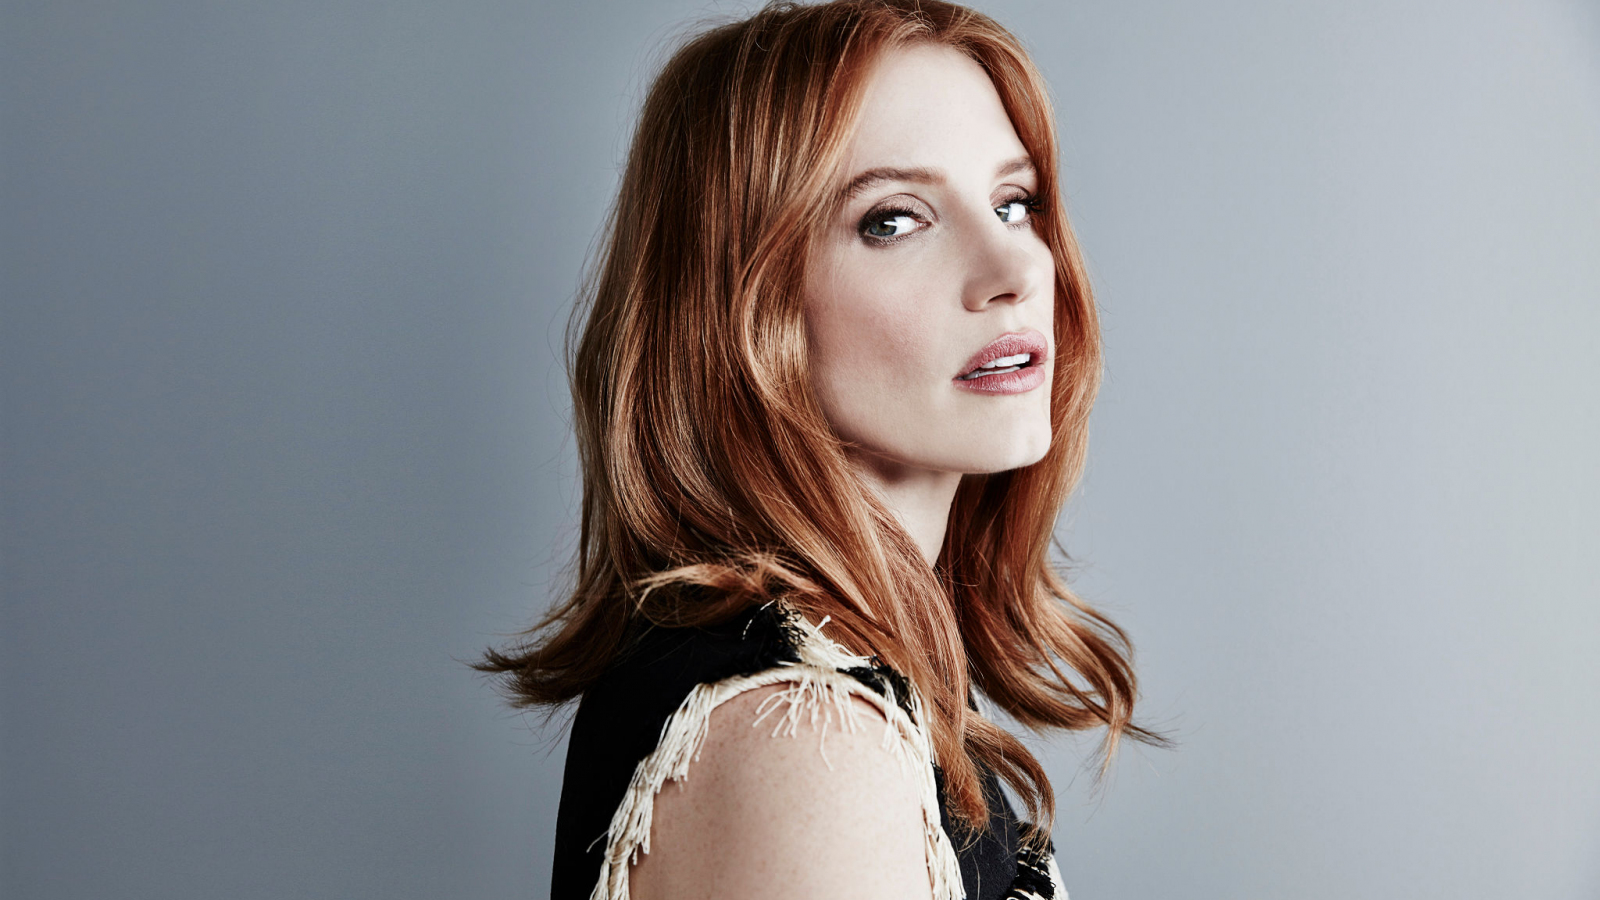 1600x900 wallpaper Jessica chastain, red head, actress